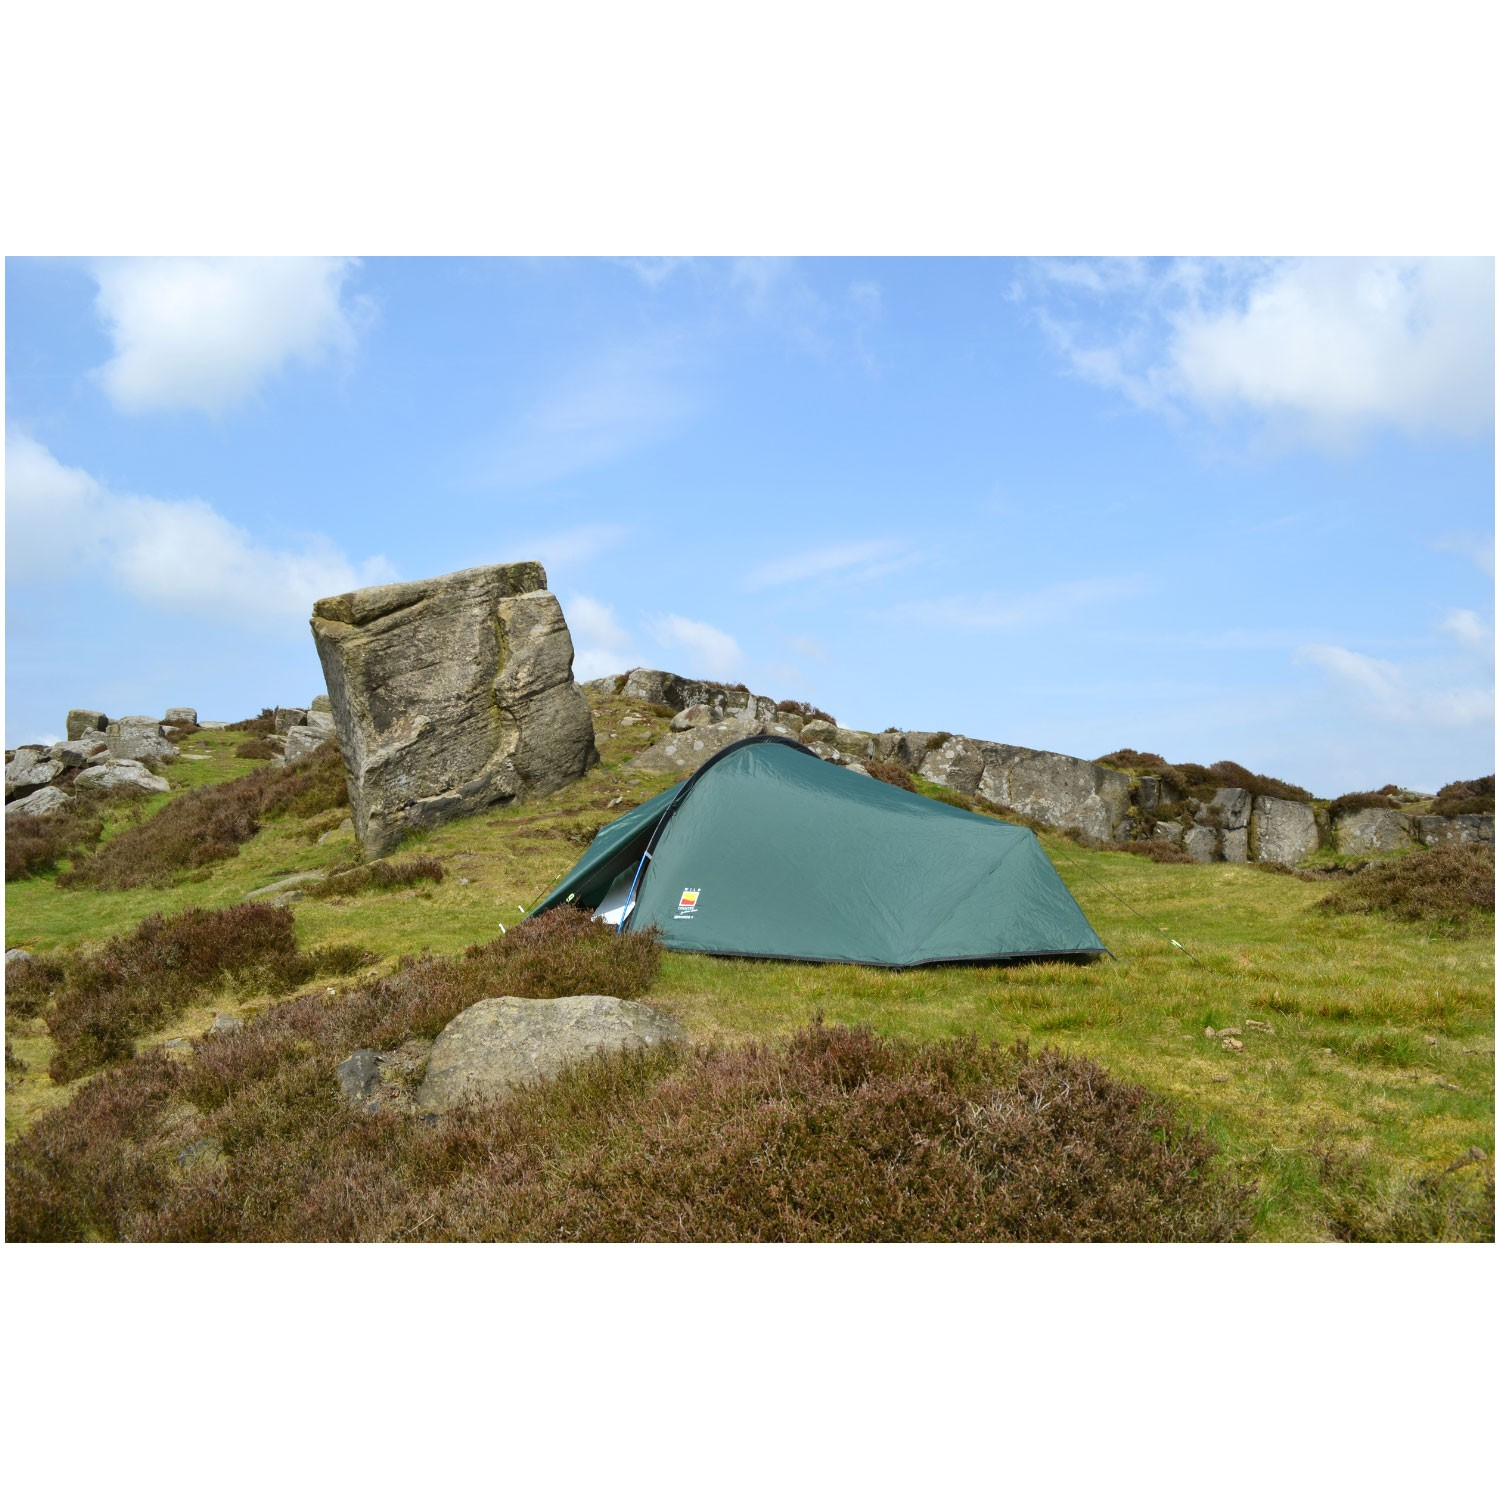 Wild Country Zephyros 2 Lightweight Backpacking Tent